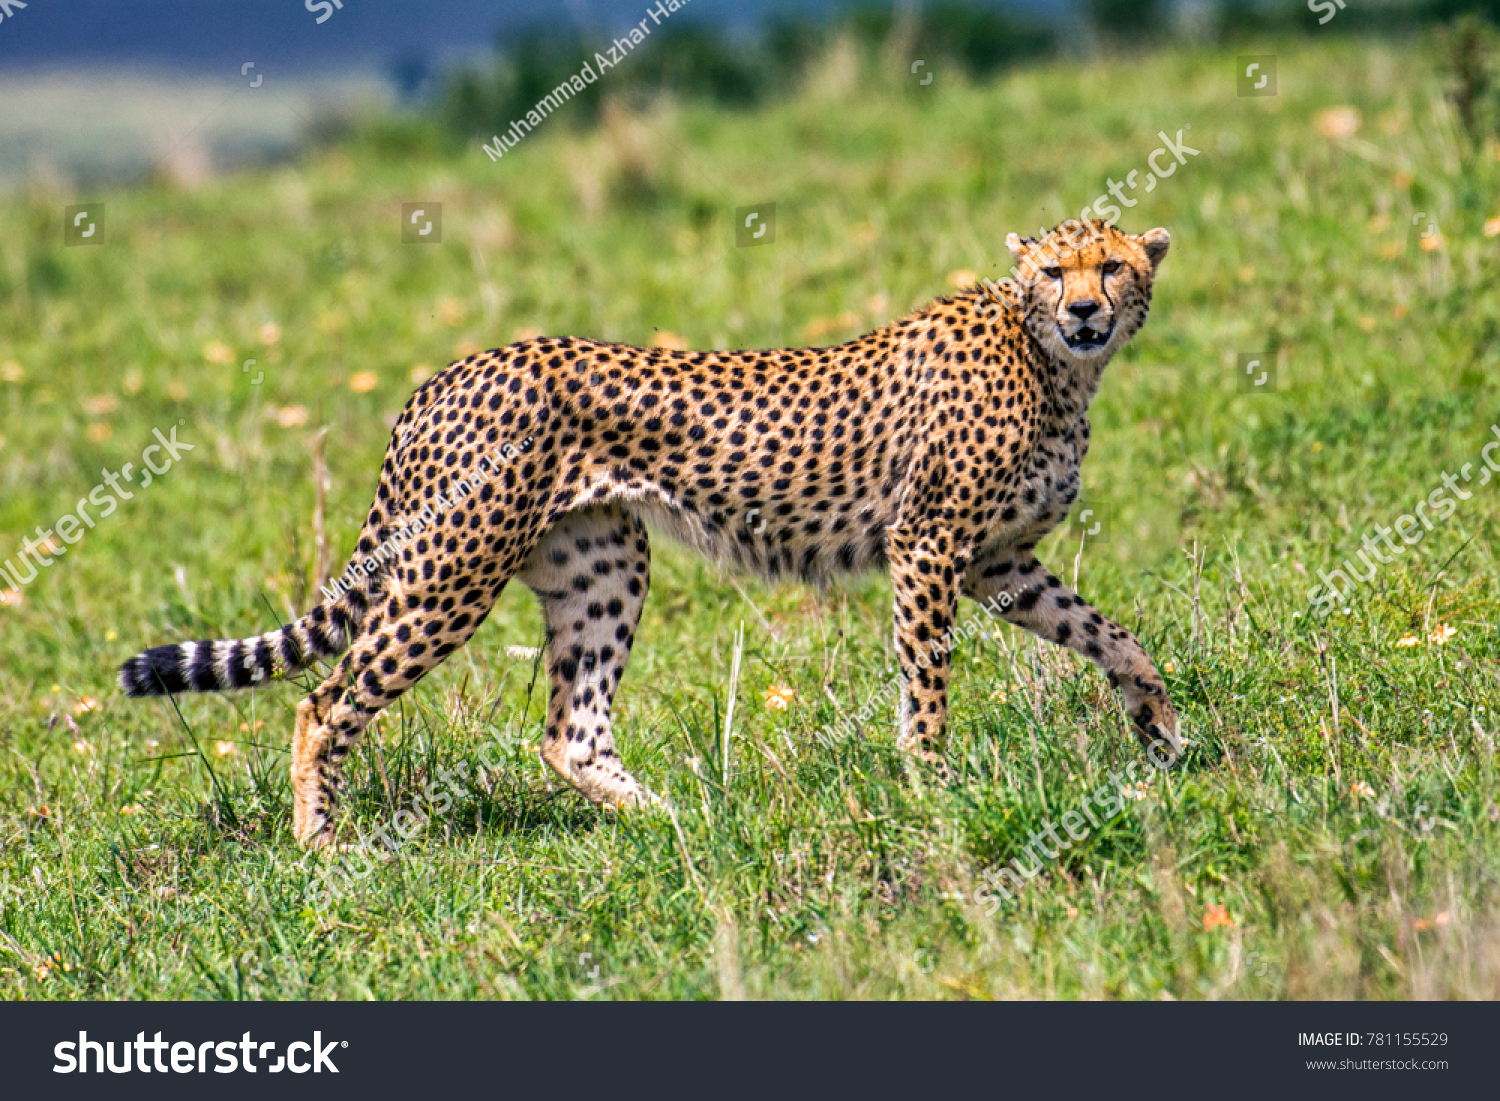 cheetah tiger jaguar kenya africa stock photo (royalty free